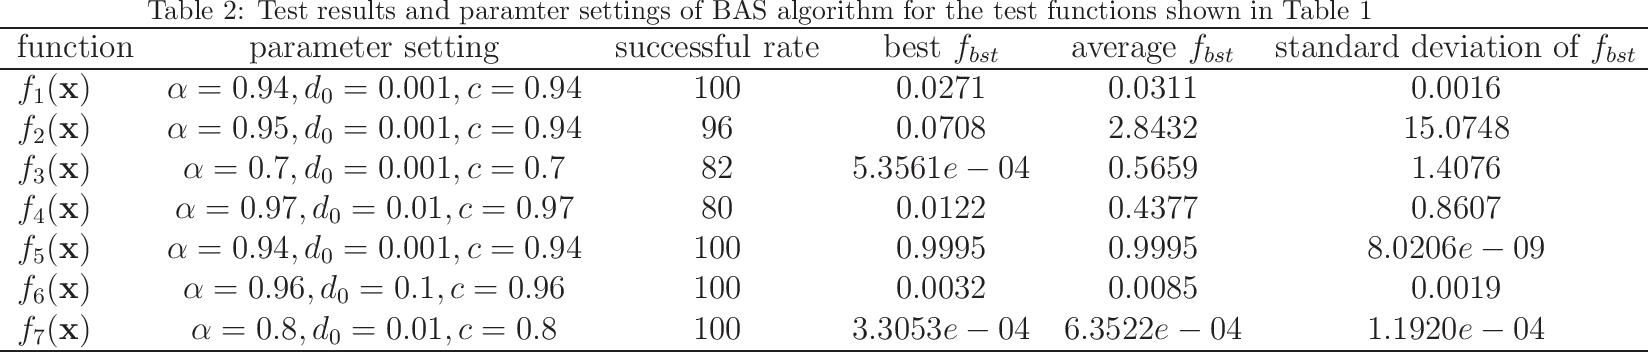 Figure 2 for Convergence analysis of beetle antennae search algorithm and its applications